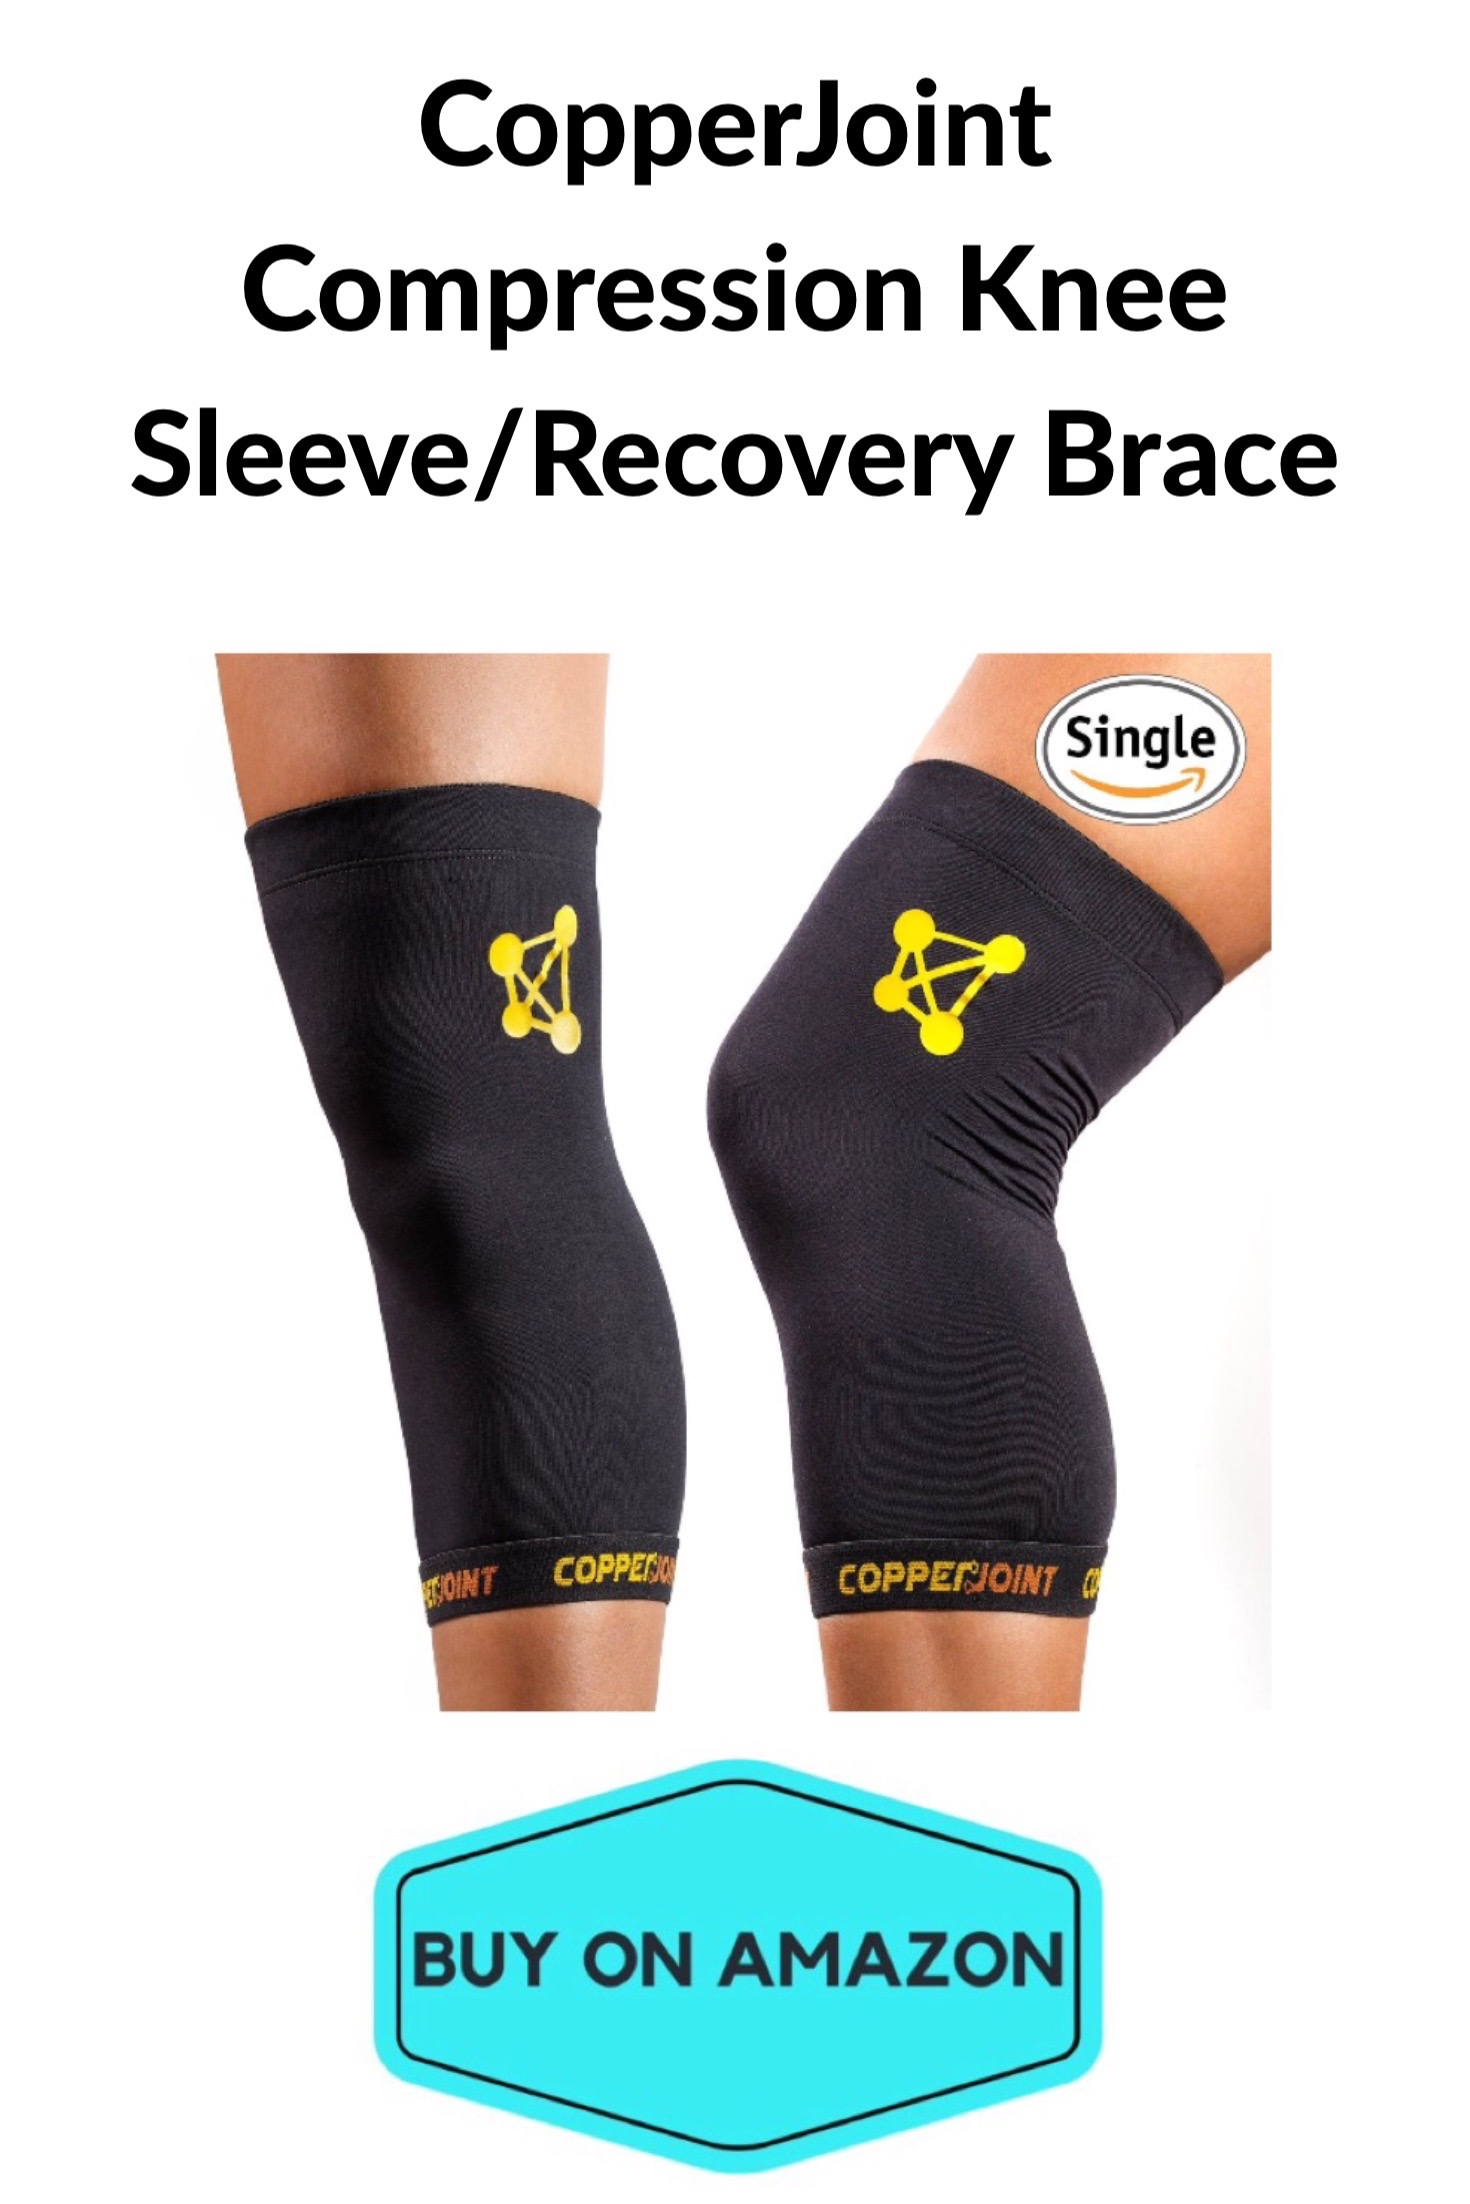 CopperJoint Compression Knee Sleeve/Recovery Brace